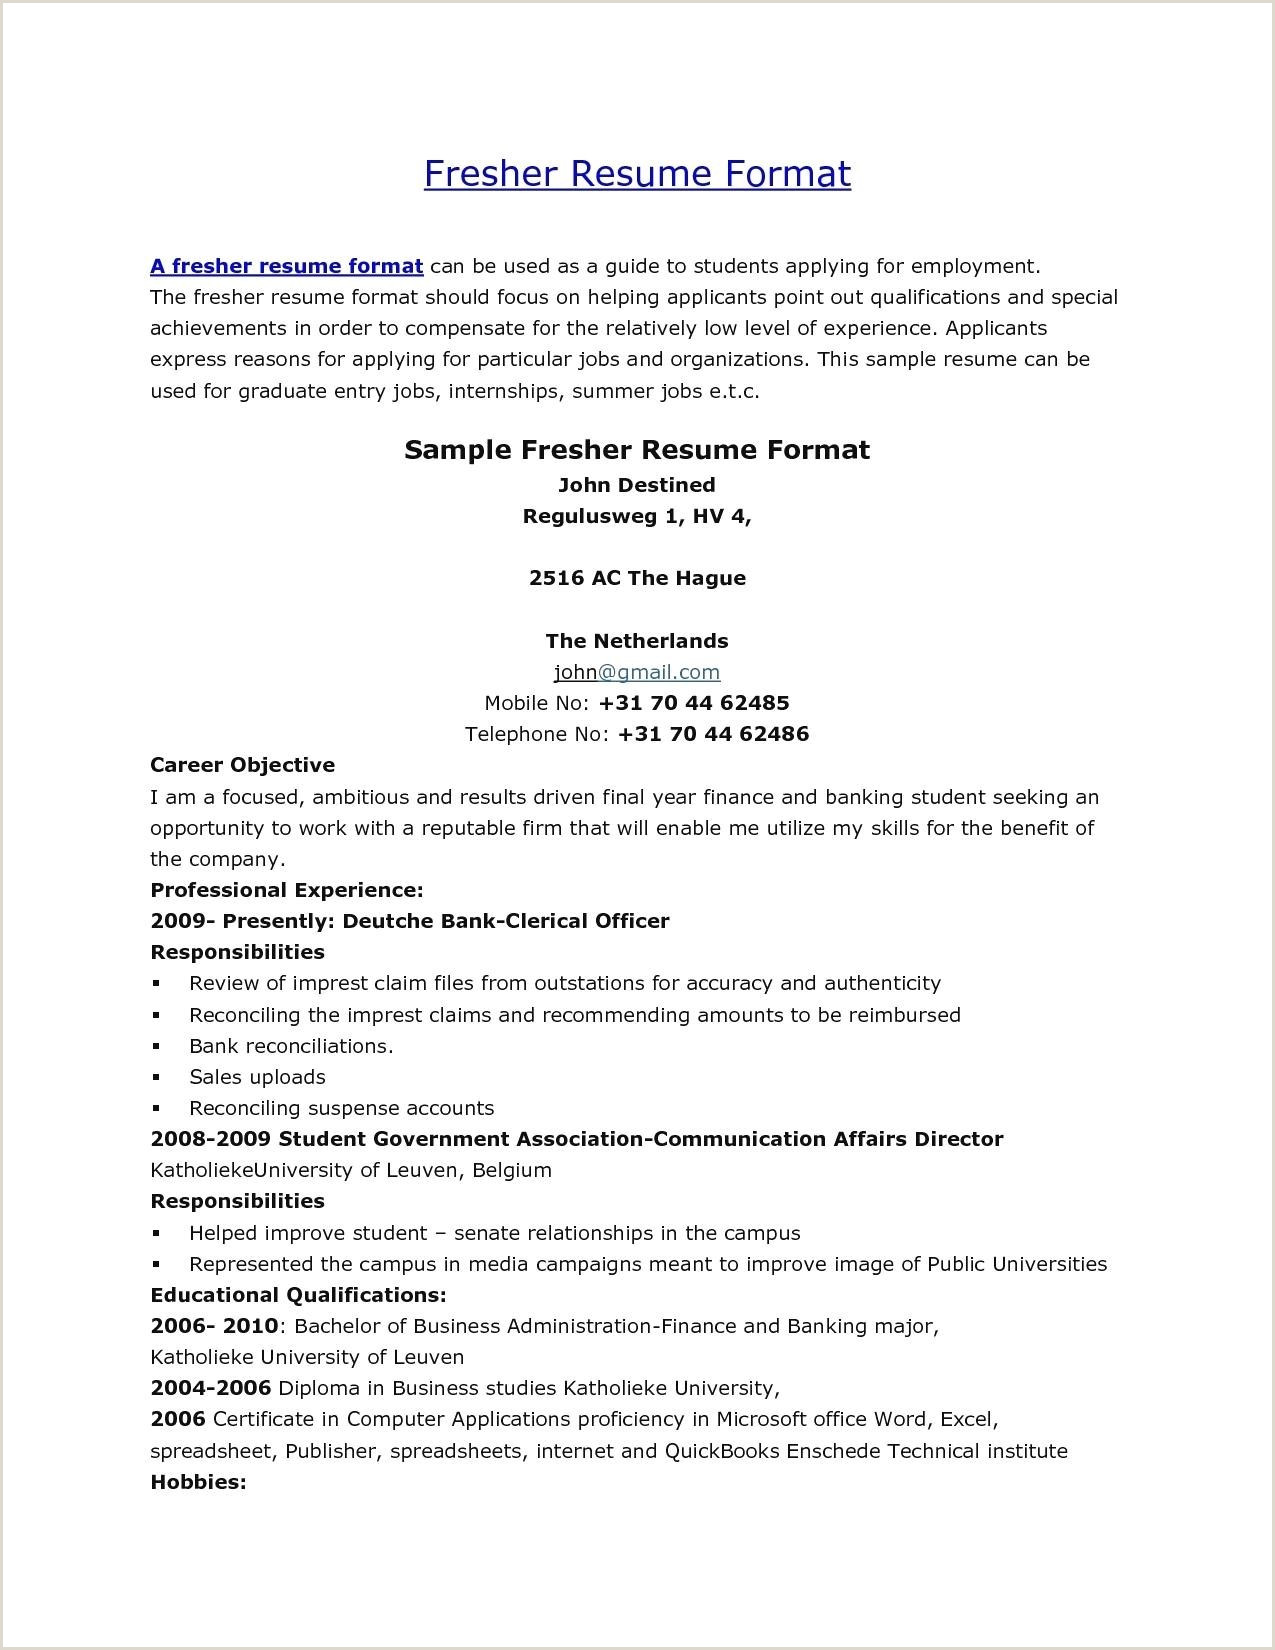 Mba Hr Fresher Resume Format Doc Download Sample Resume Format For Mba Hr Freshers Valid Resume